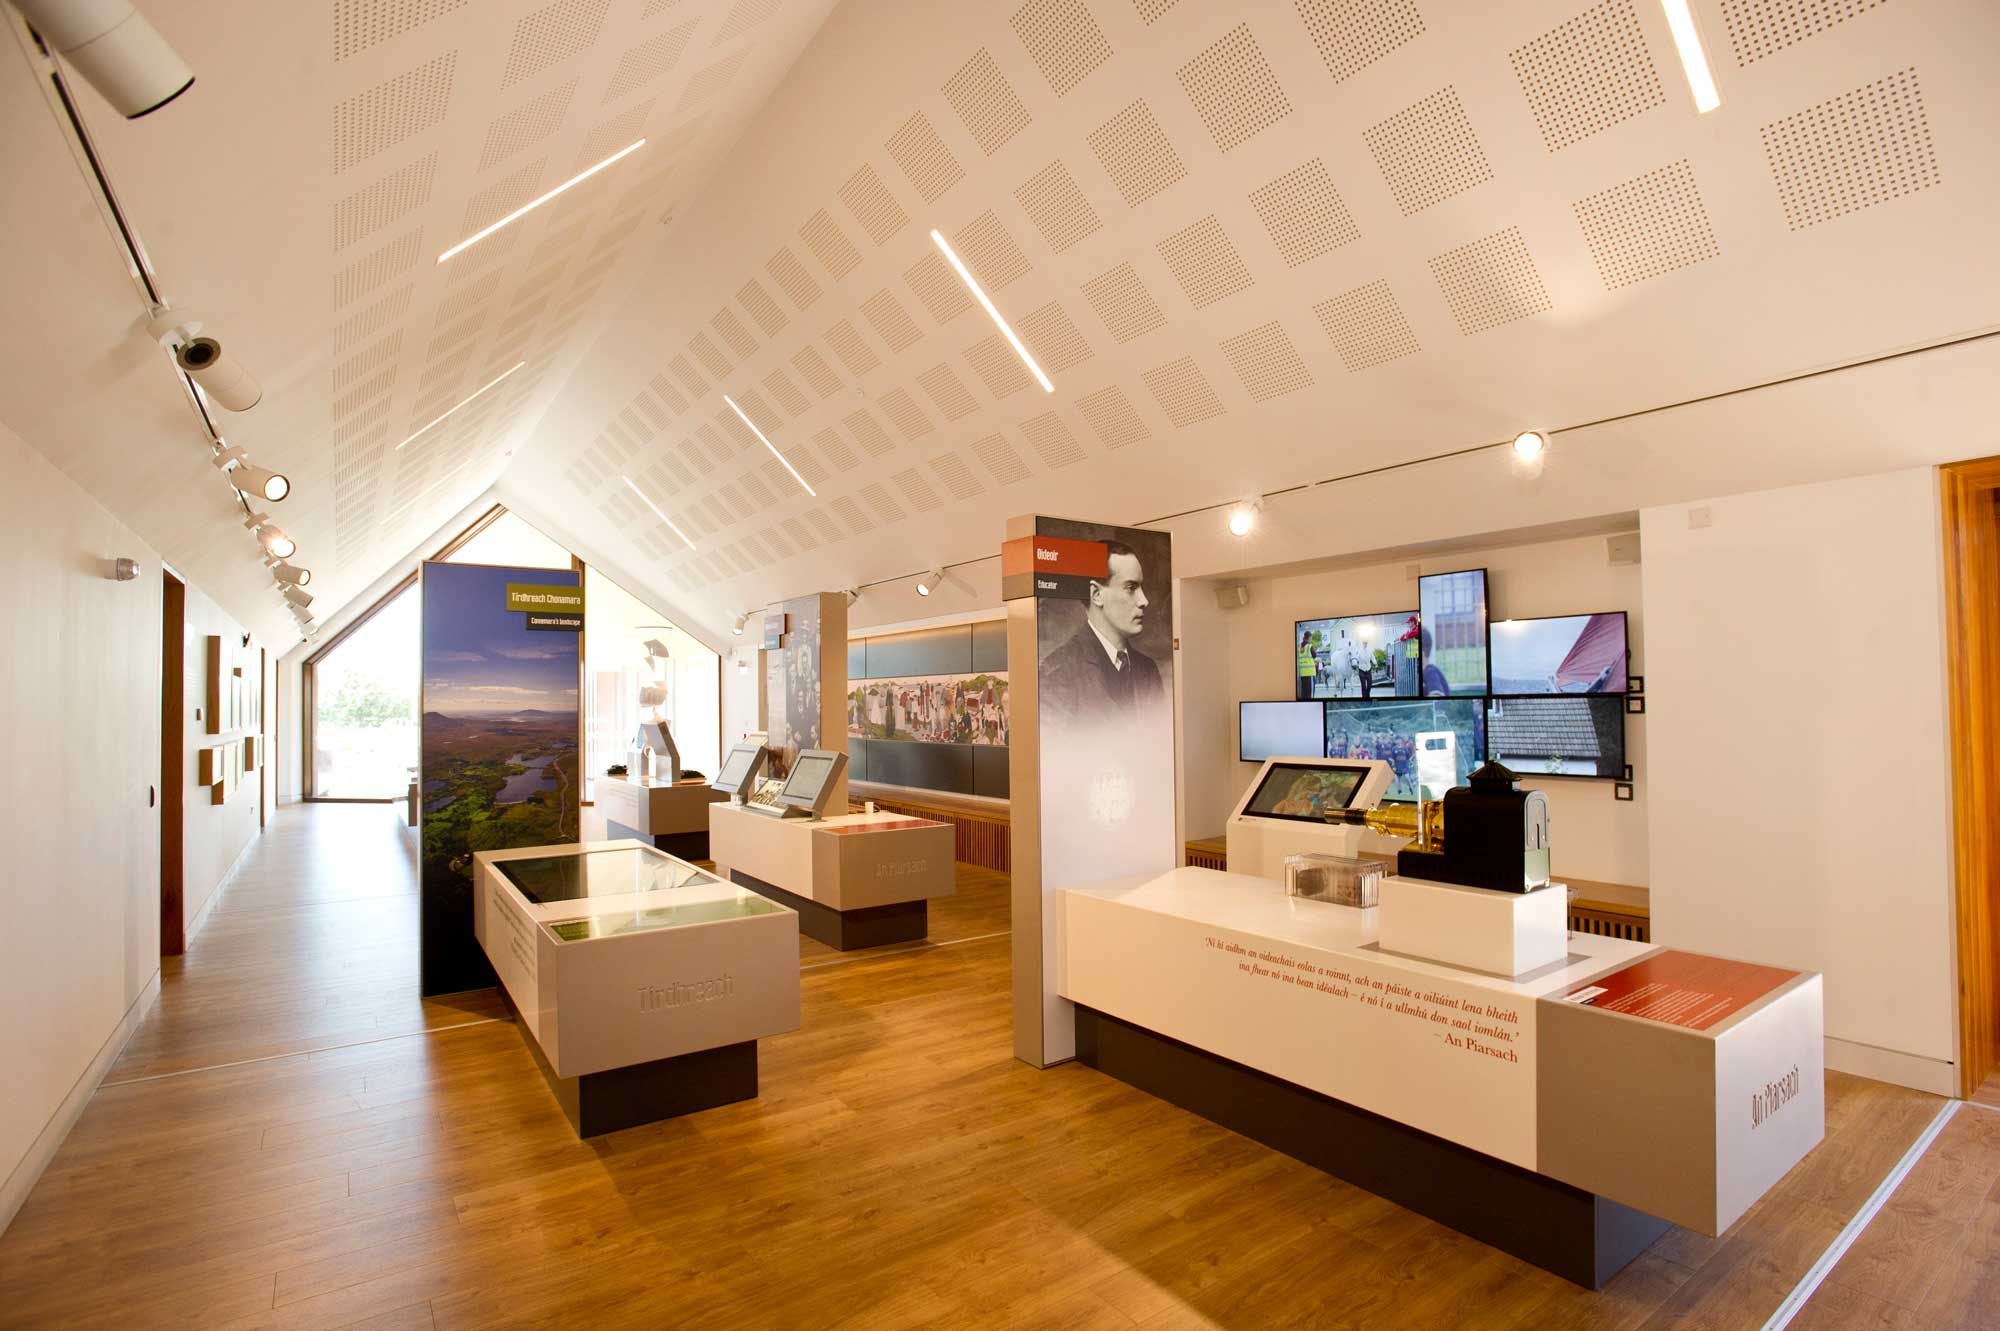 Exhibition area inside the visitor centre